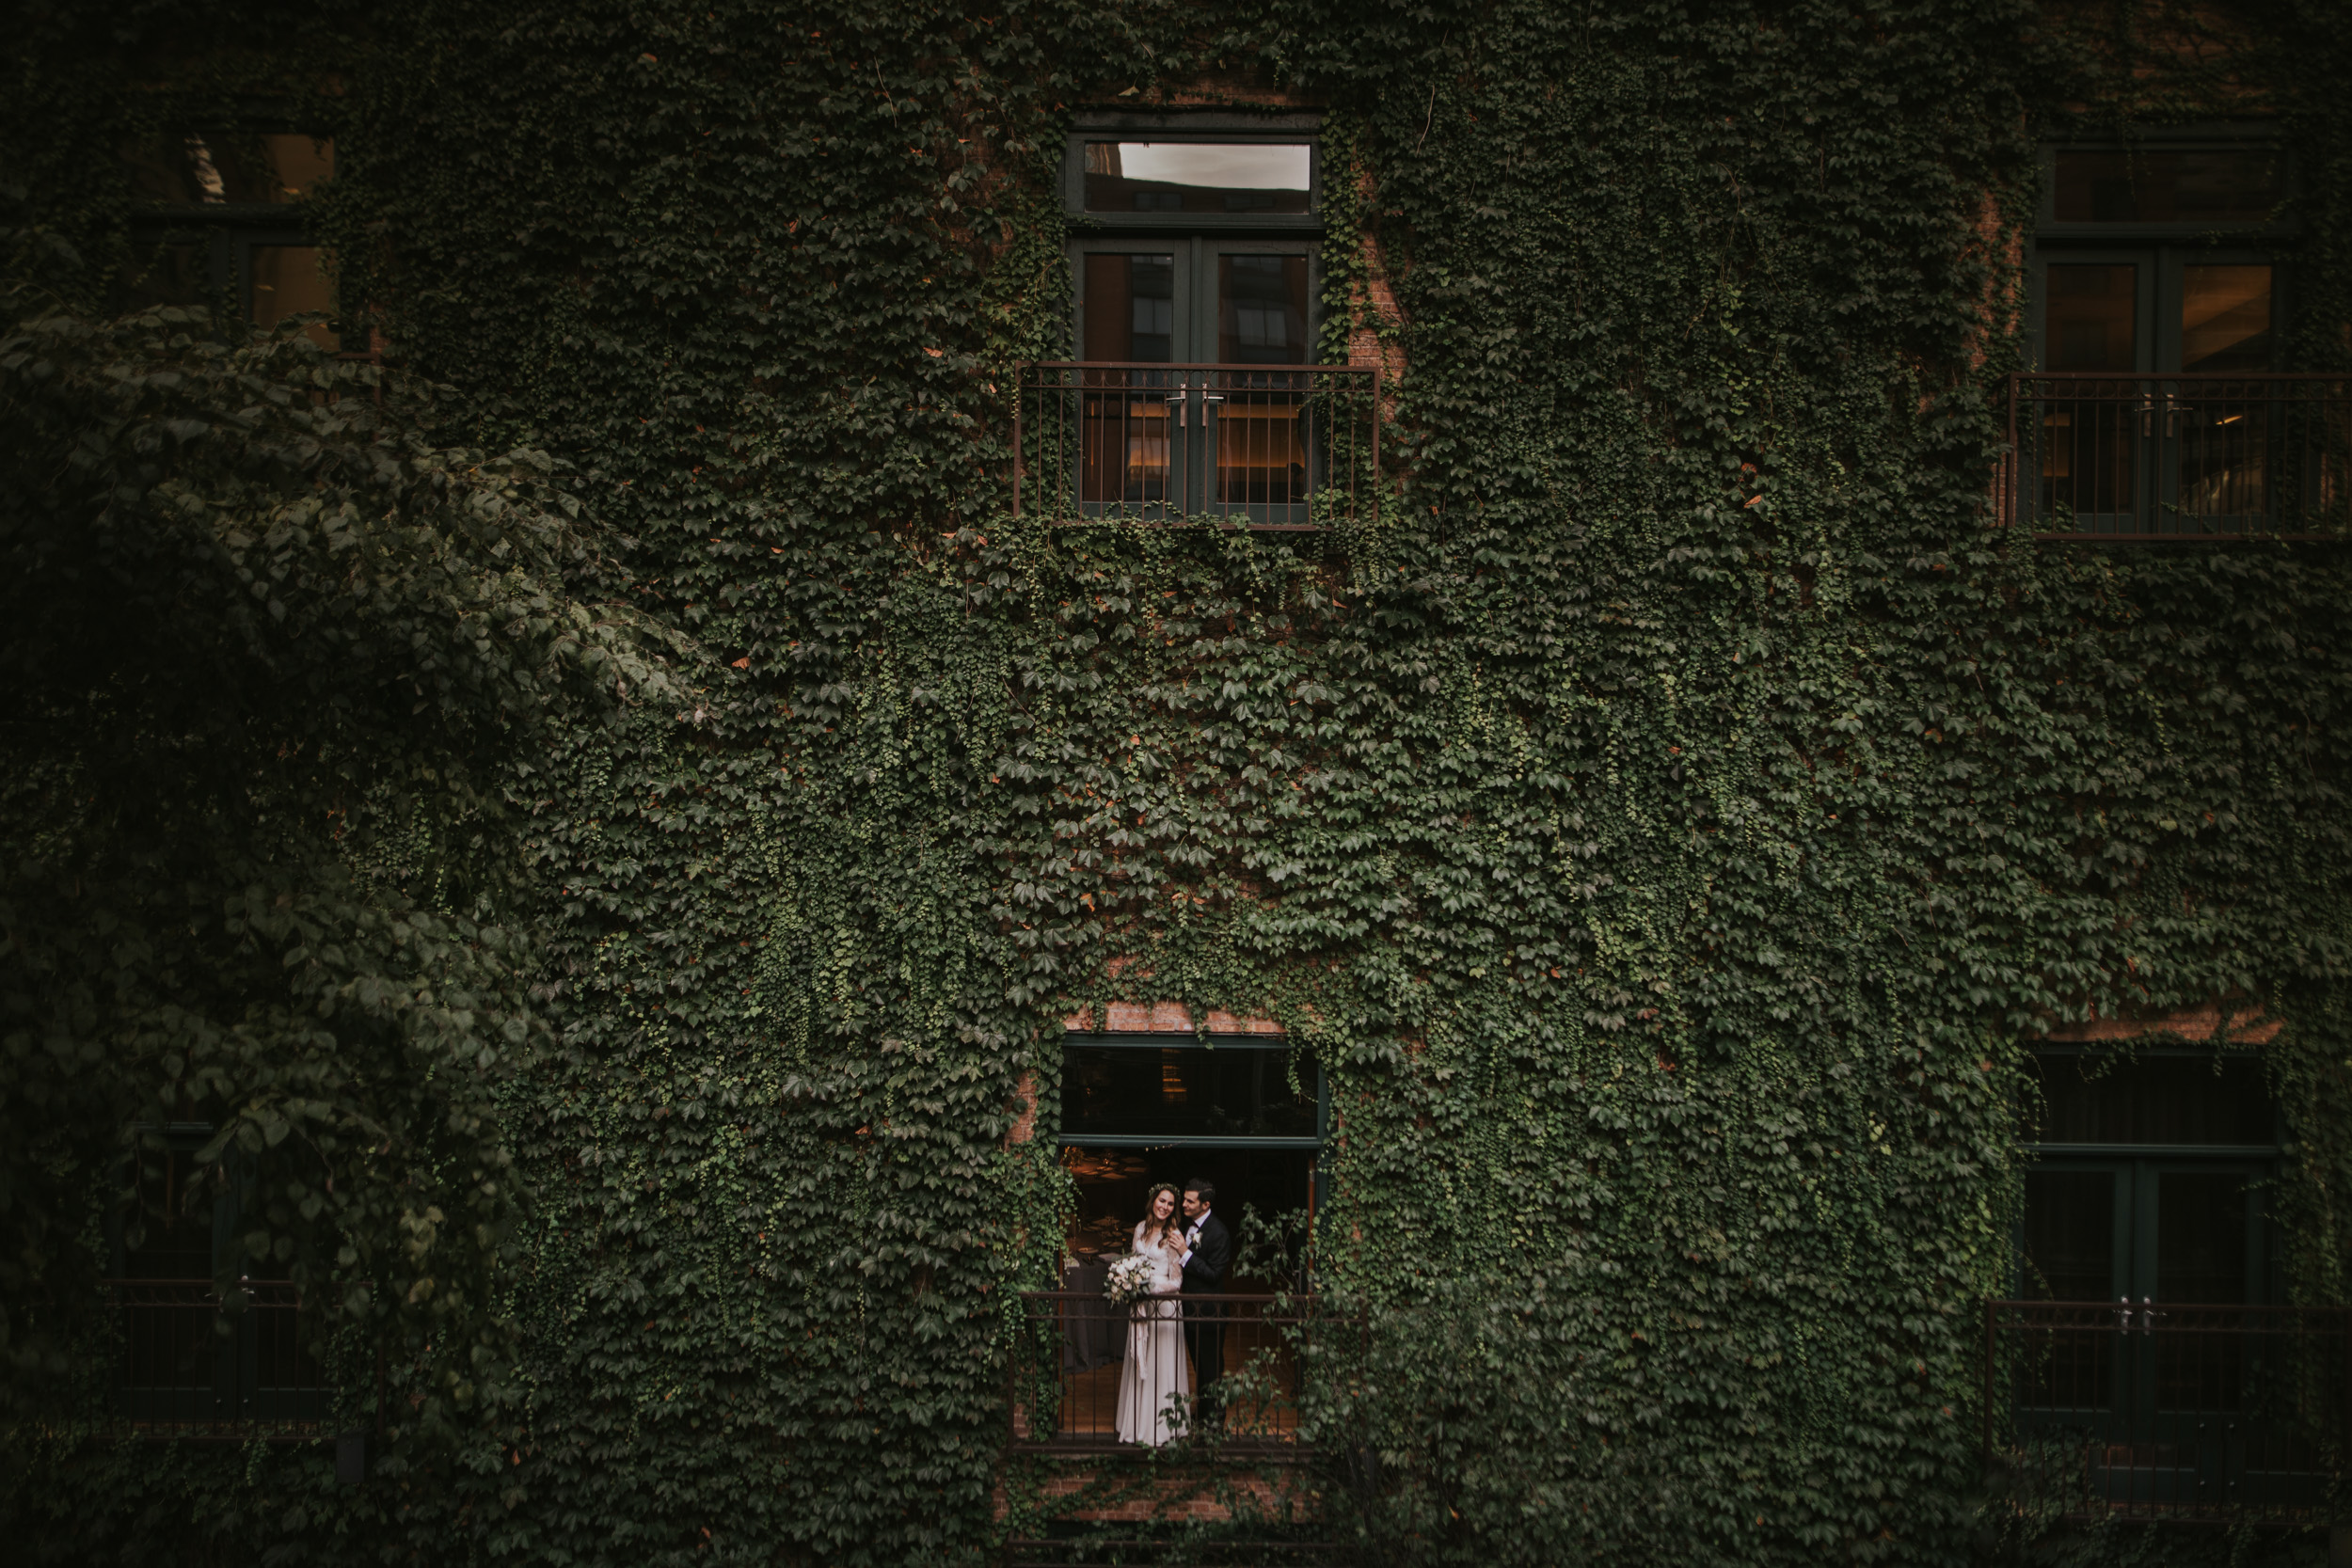 The Ivy Room_Polly C Photography 1720165417.jpg